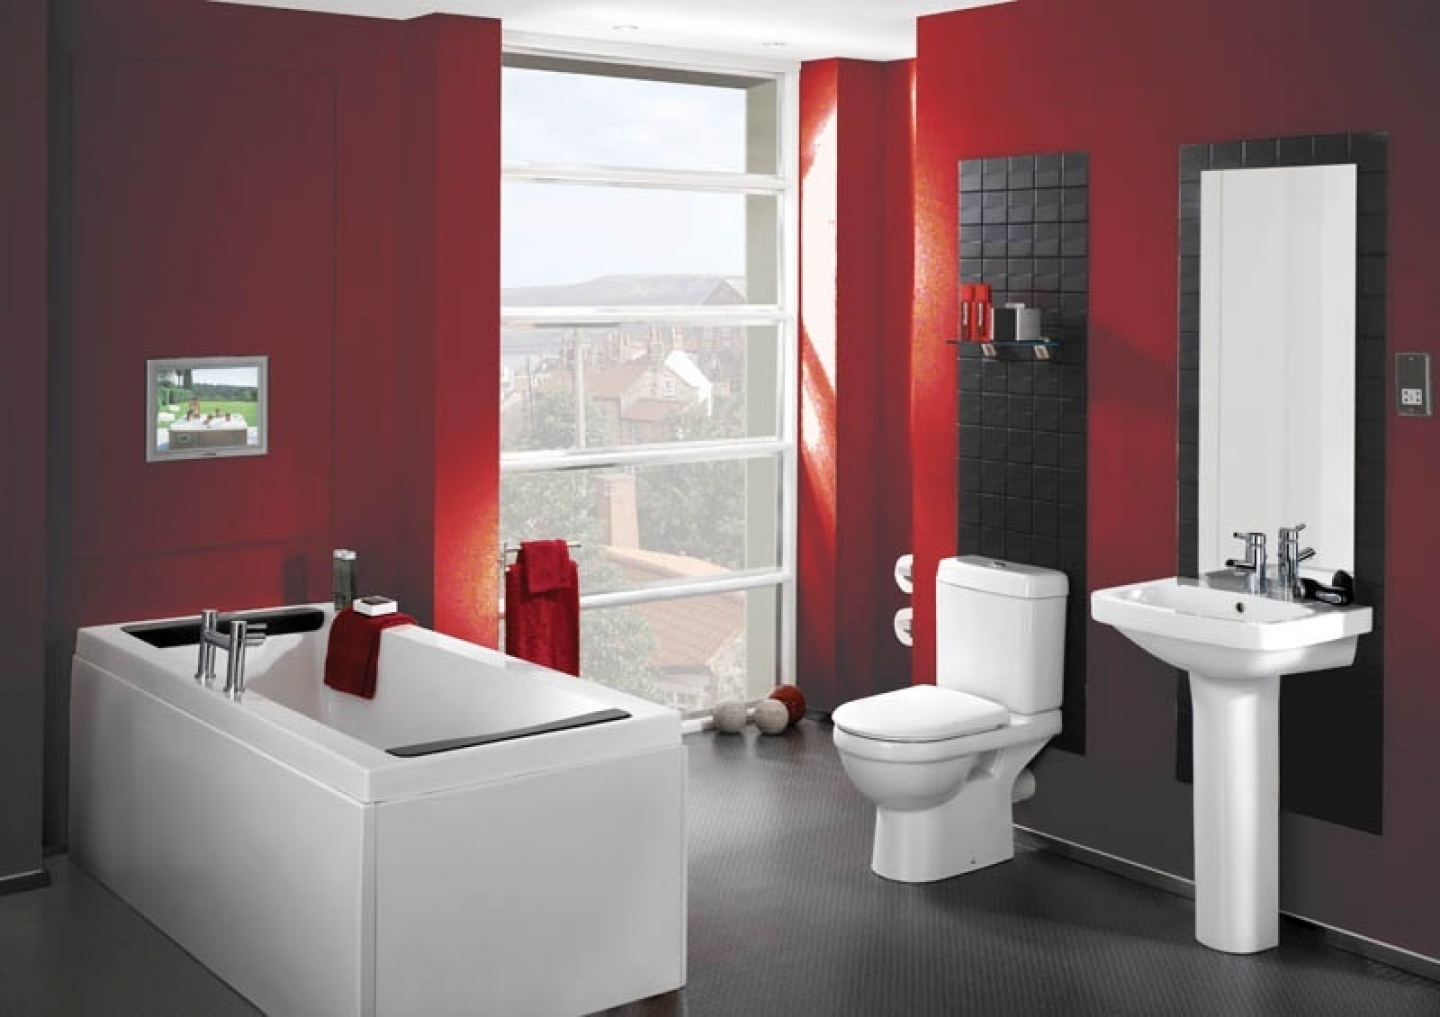 Simple bathroom decorating ideas midcityeast for Toilet design ideas